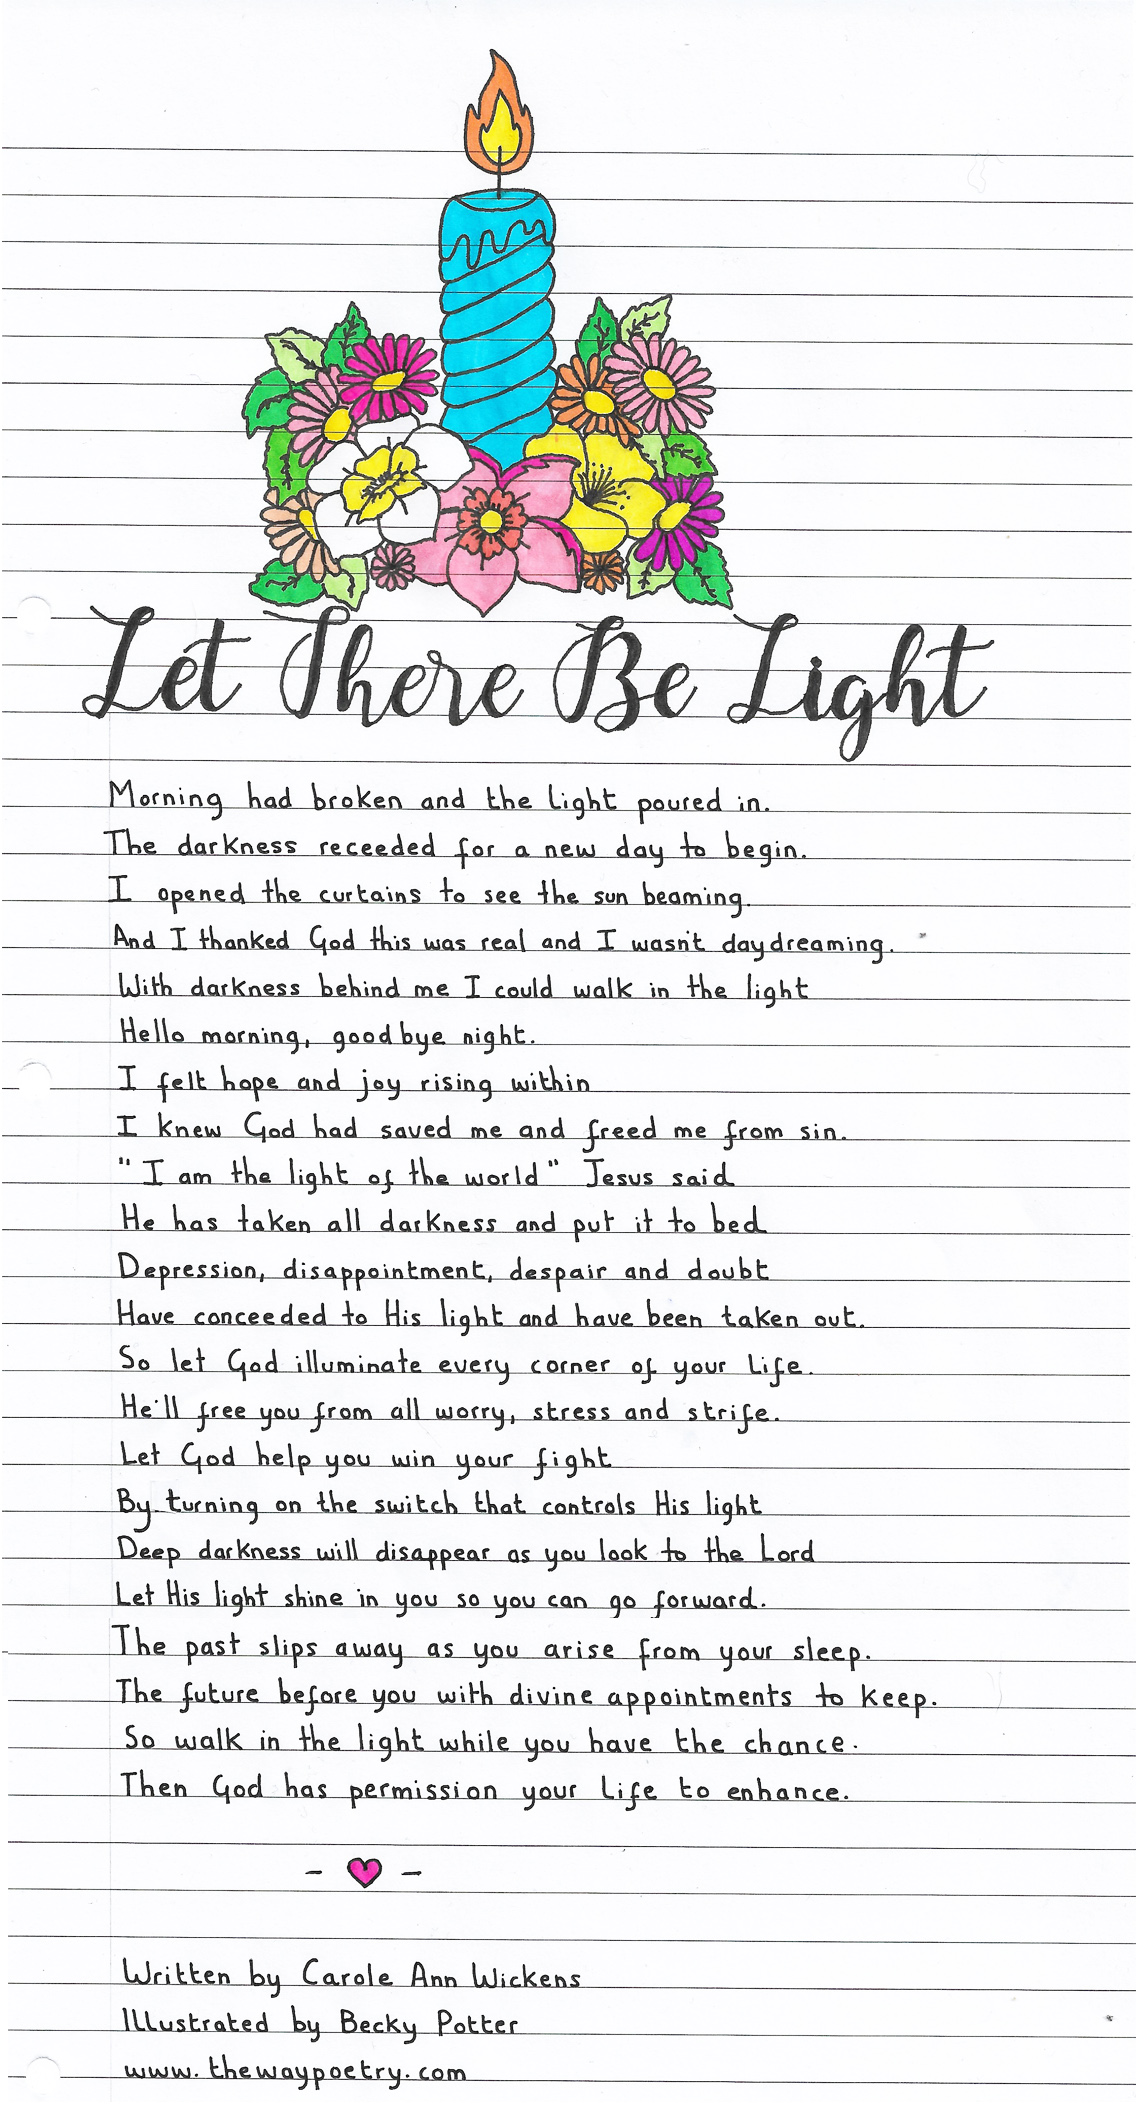 Let There Be Light by Carole Ann Wickens